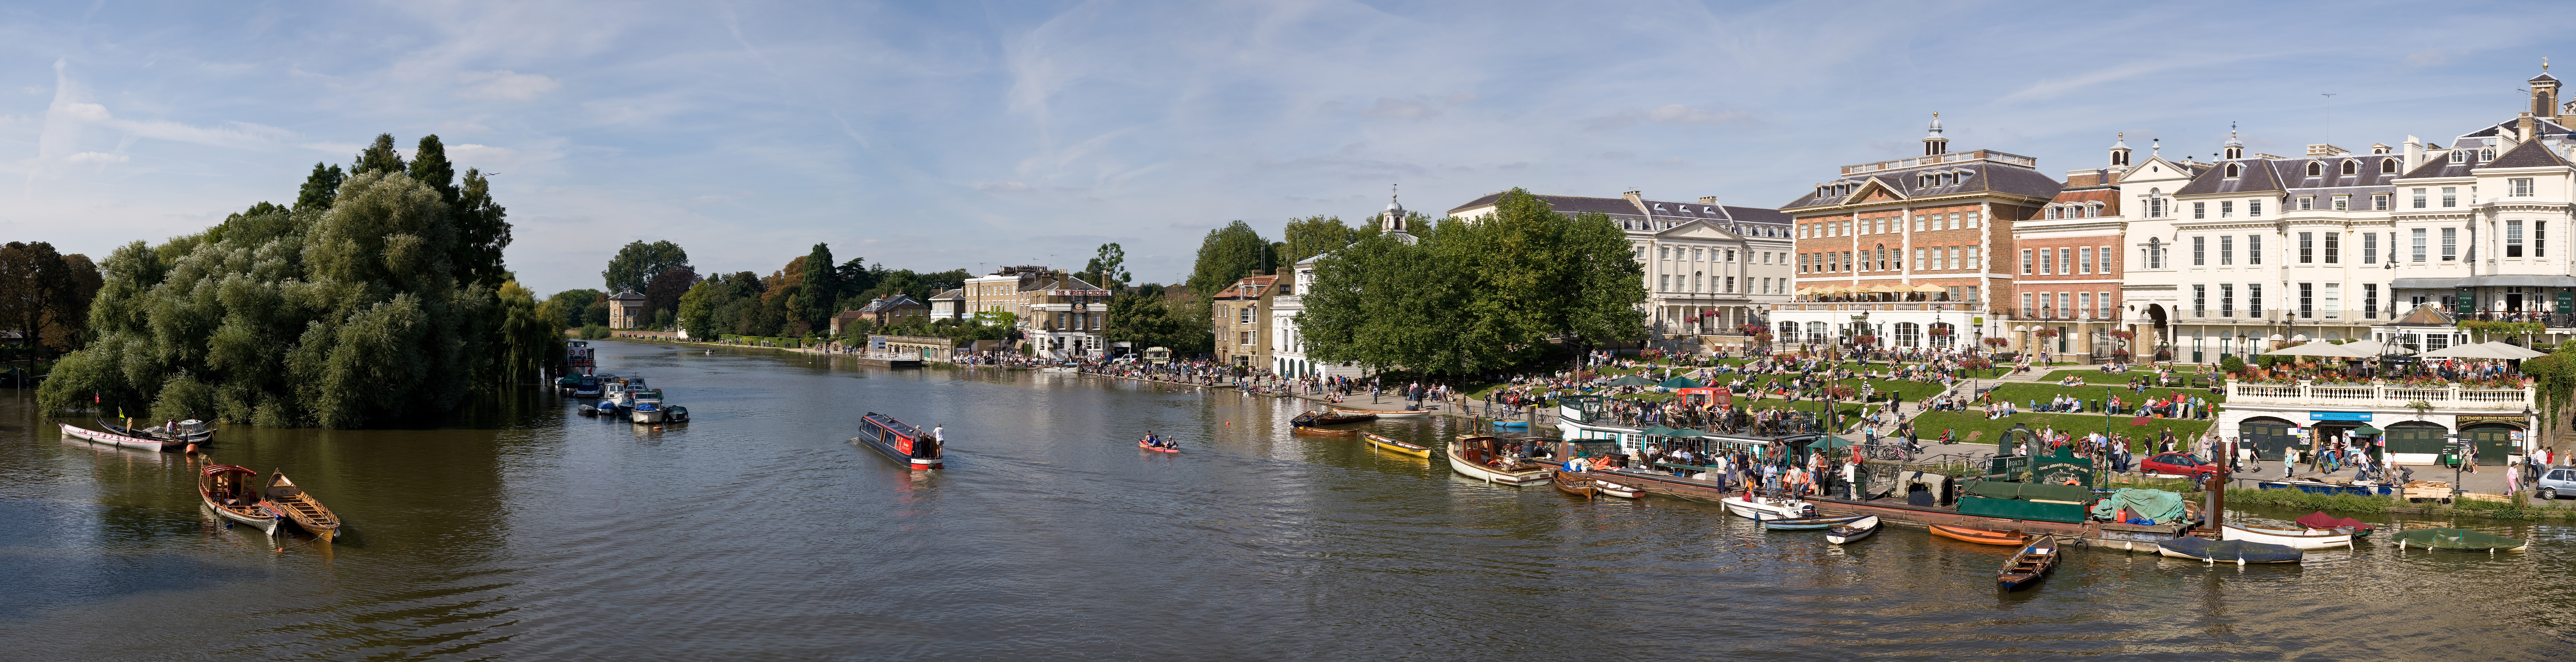 Uncategorized Panoramic Views Of London wikipediafeatured picture candidatesthames riverfront in a panoramic view of the thames richmond from road bridge